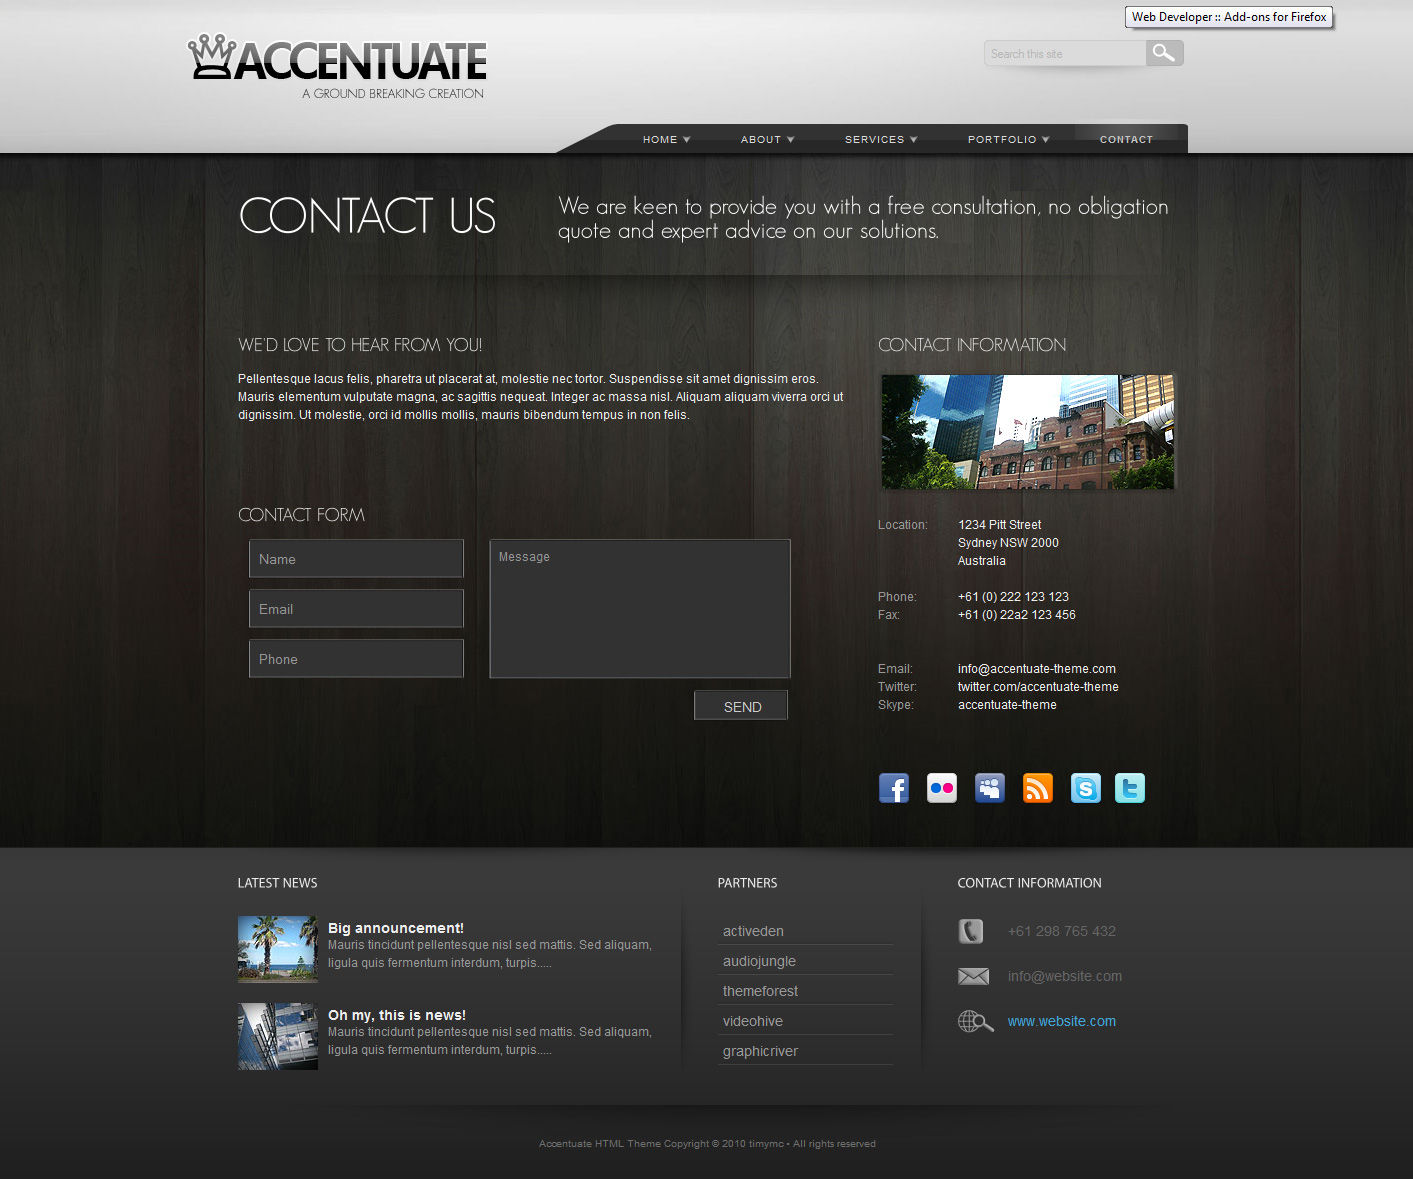 Accentuate Premium HTML Theme / Business Portfolio - Contact page - It's ready to go with AJAX validation and pre-coded PHP all in the one file. All you need to do is add your email address into the form and it works!